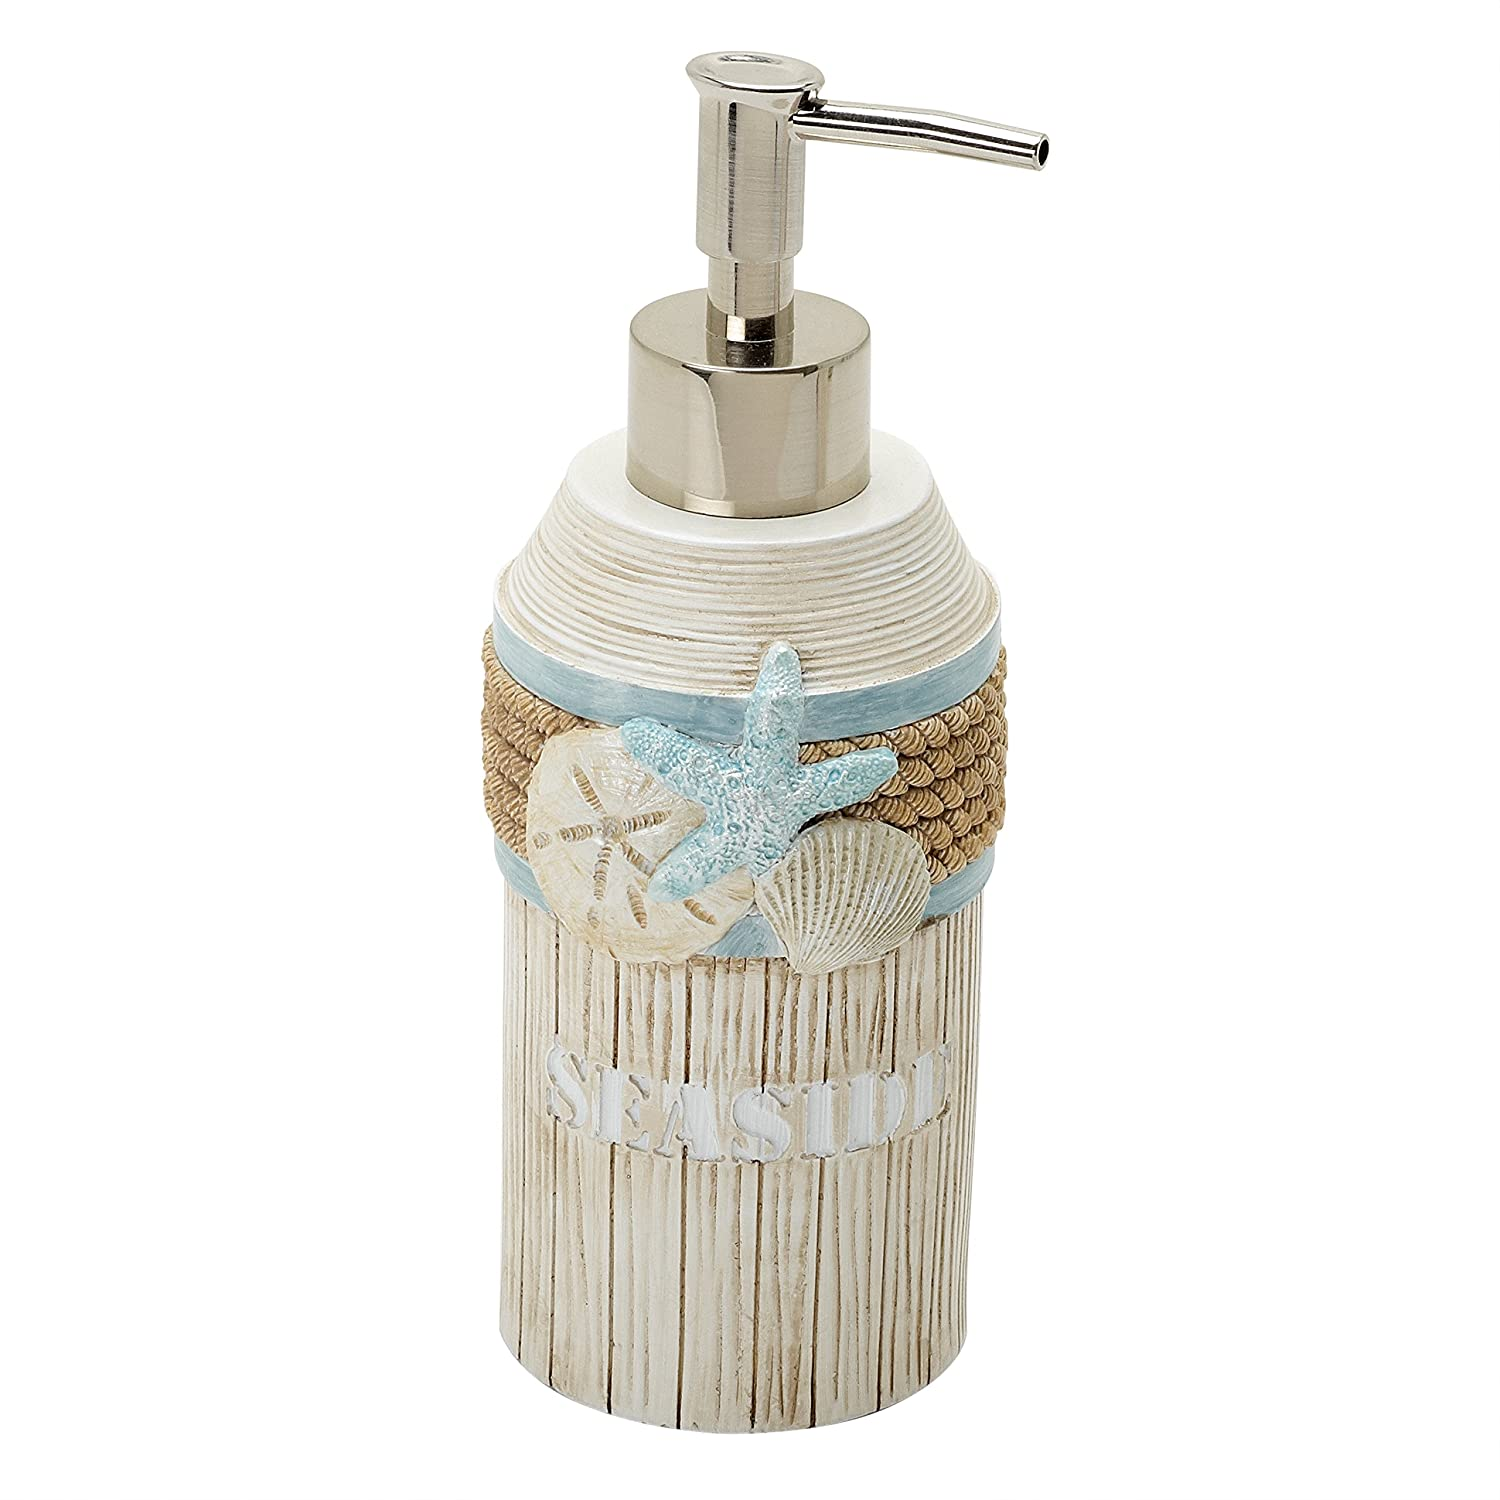 Best Mermaid and Ocean Themed Soap Dispensers 2